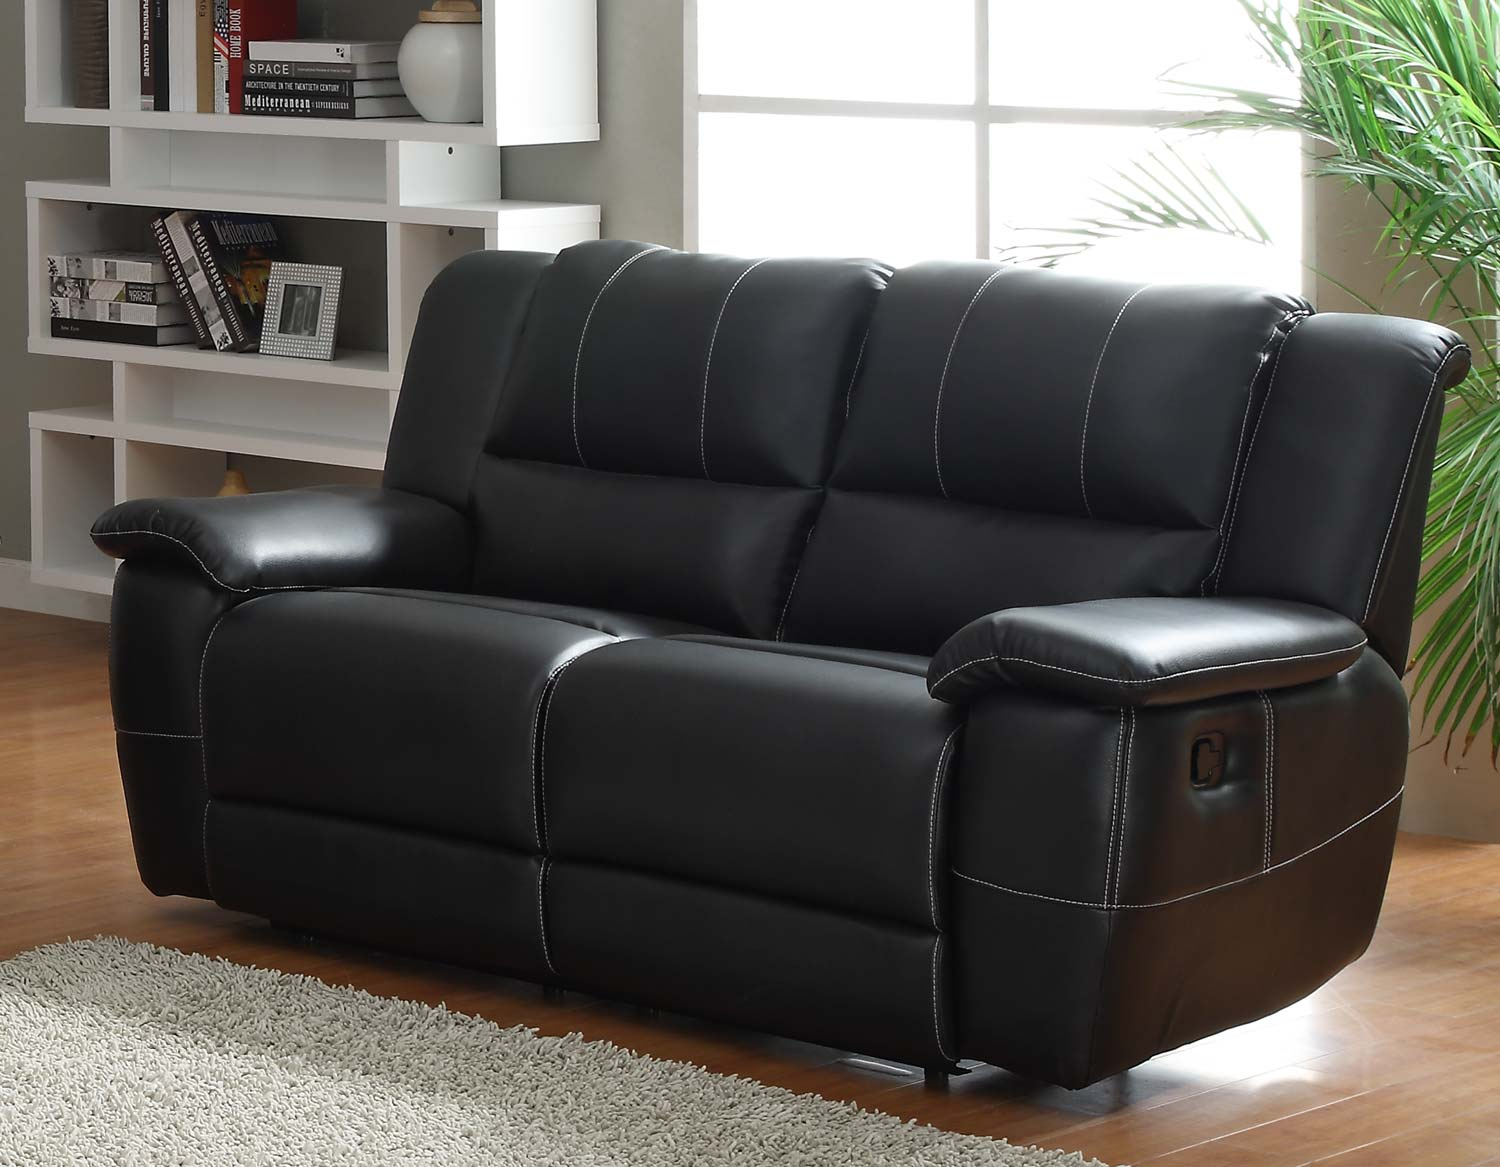 homelegance cantrell reclining sofa set black bonded leather match u9778blk 3. Black Bedroom Furniture Sets. Home Design Ideas